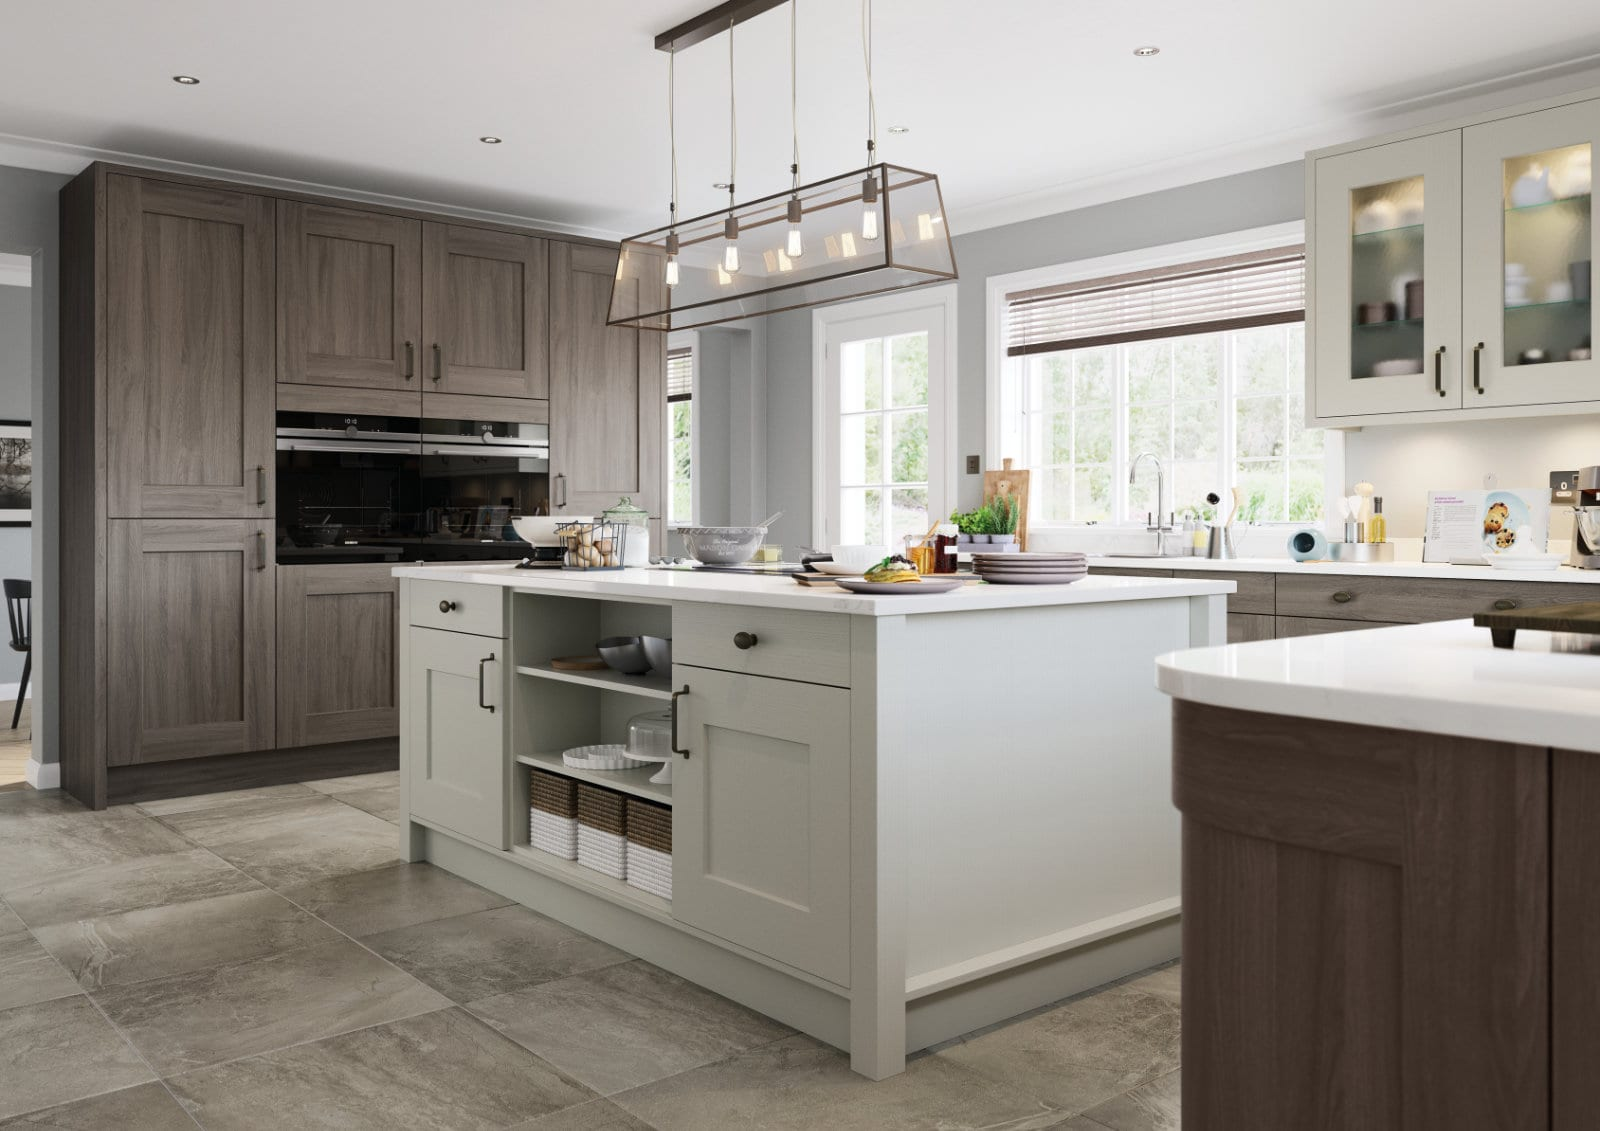 Alku Shaker Wood U Shaped Kitchen With Island 3 | Unique Bedrooms Direct | Dunstable